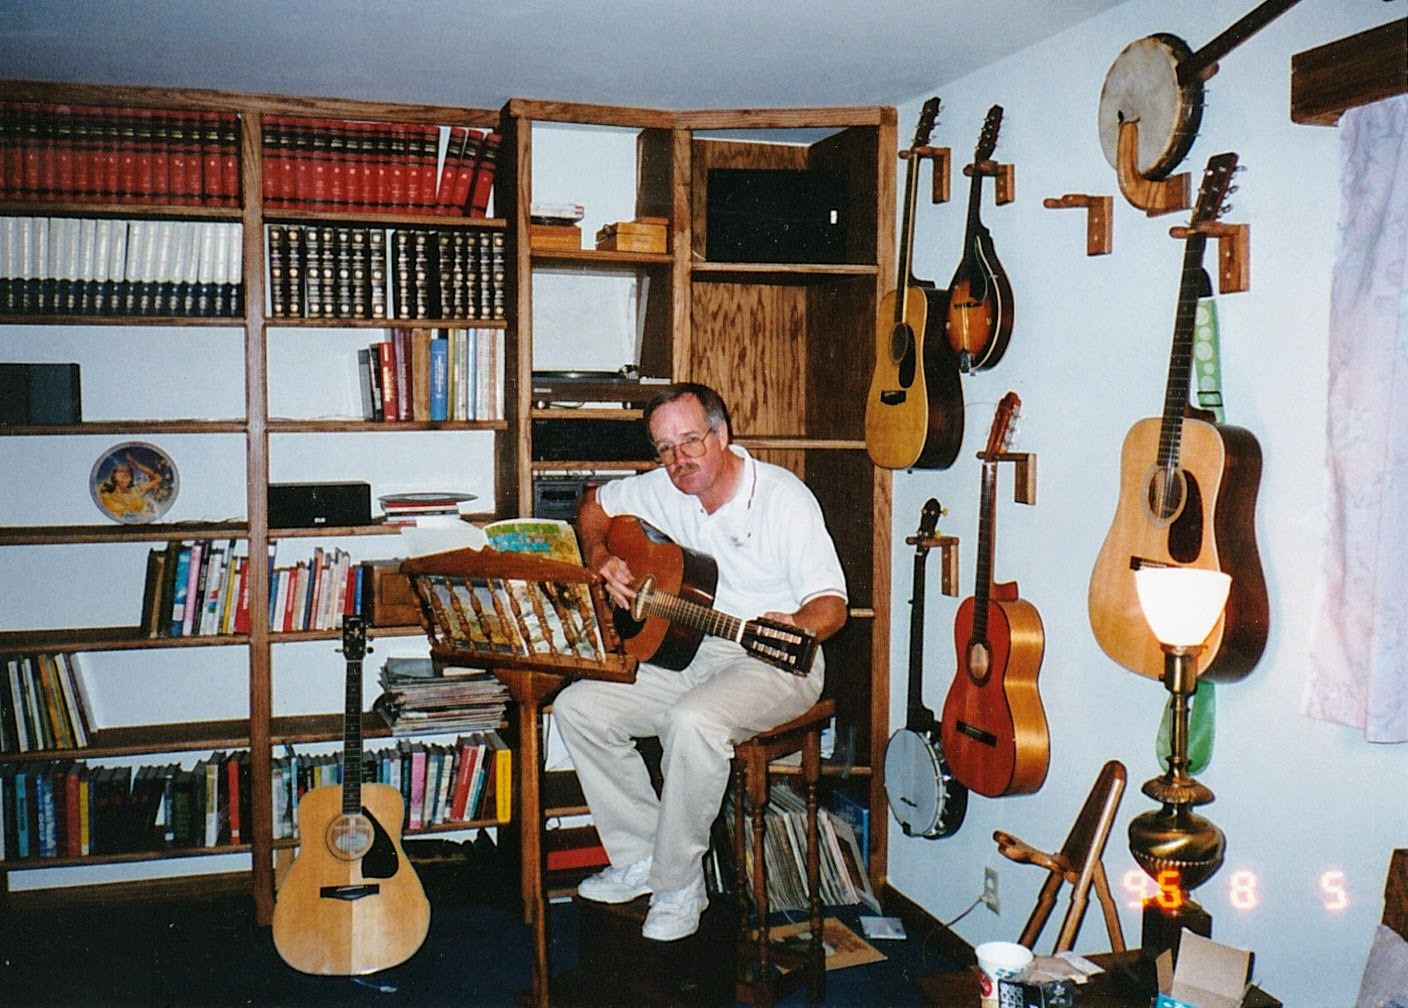 Pretty much everything made of wood in this photo was made by Dad: Music stand, stool, bookshelves, guitar hangers, and even some of the guitars!